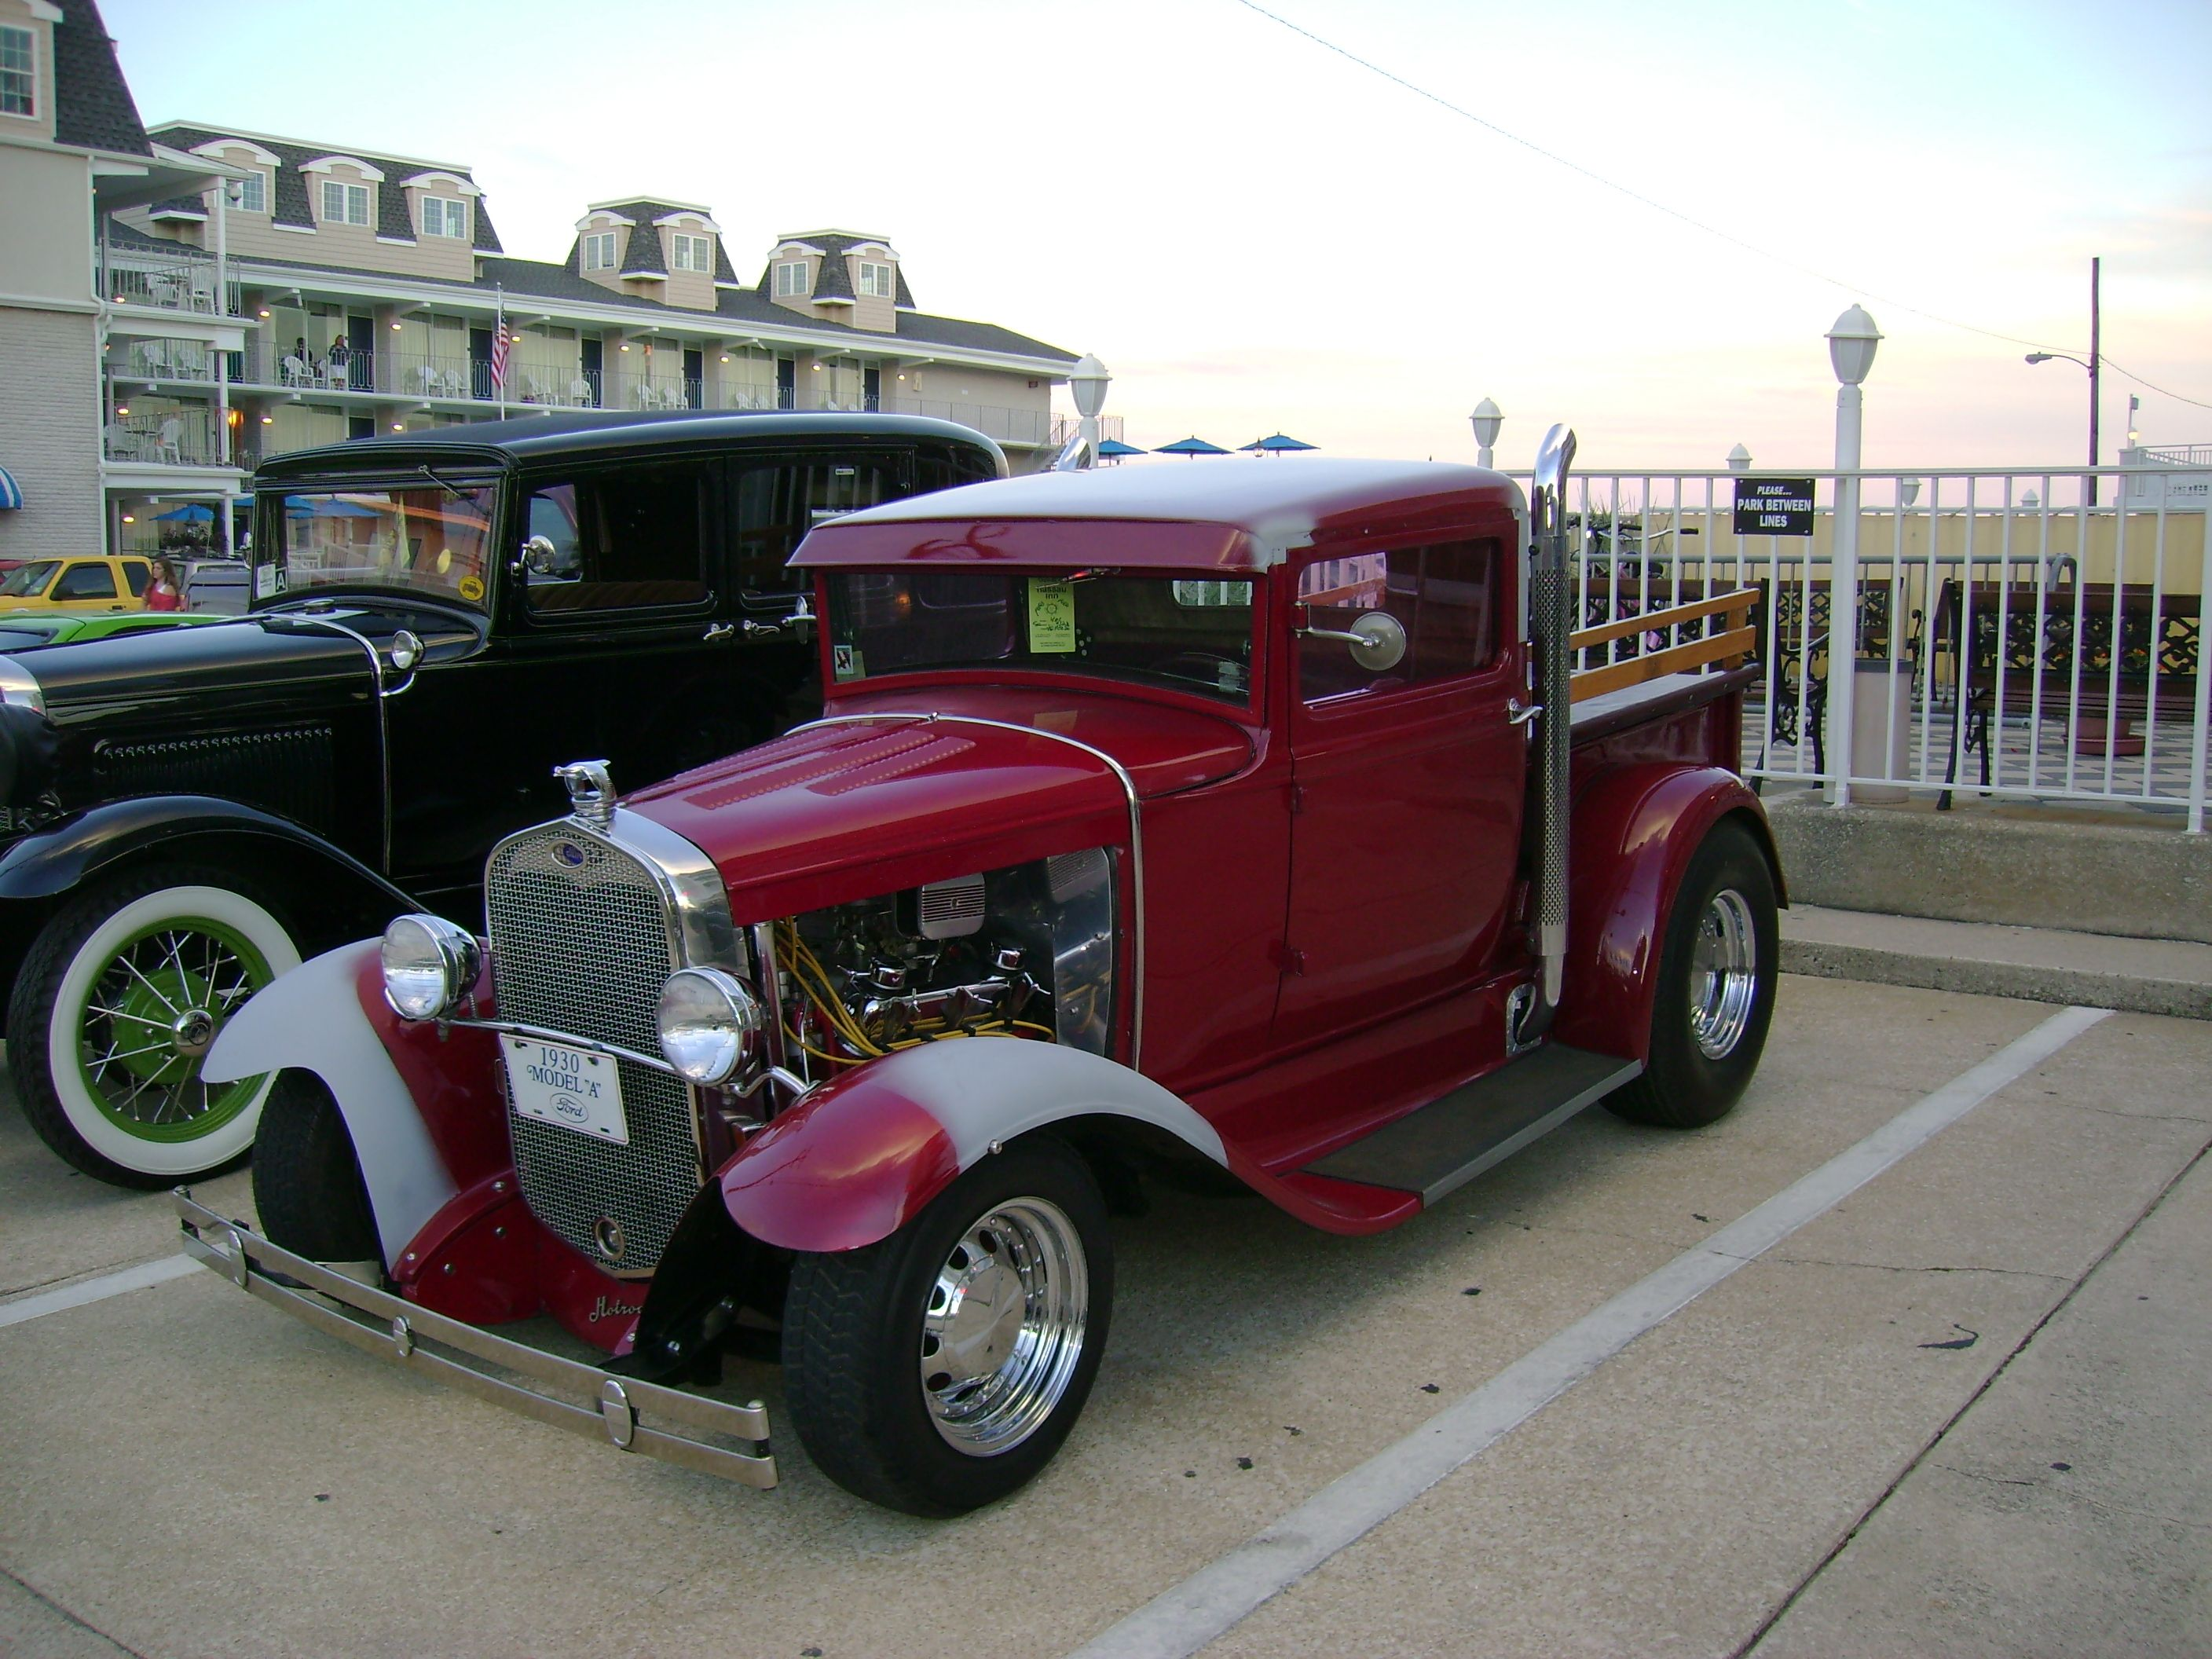 Car Show Wildwood NJ Wildwood Crest Pinterest Cars - Wildwood car show